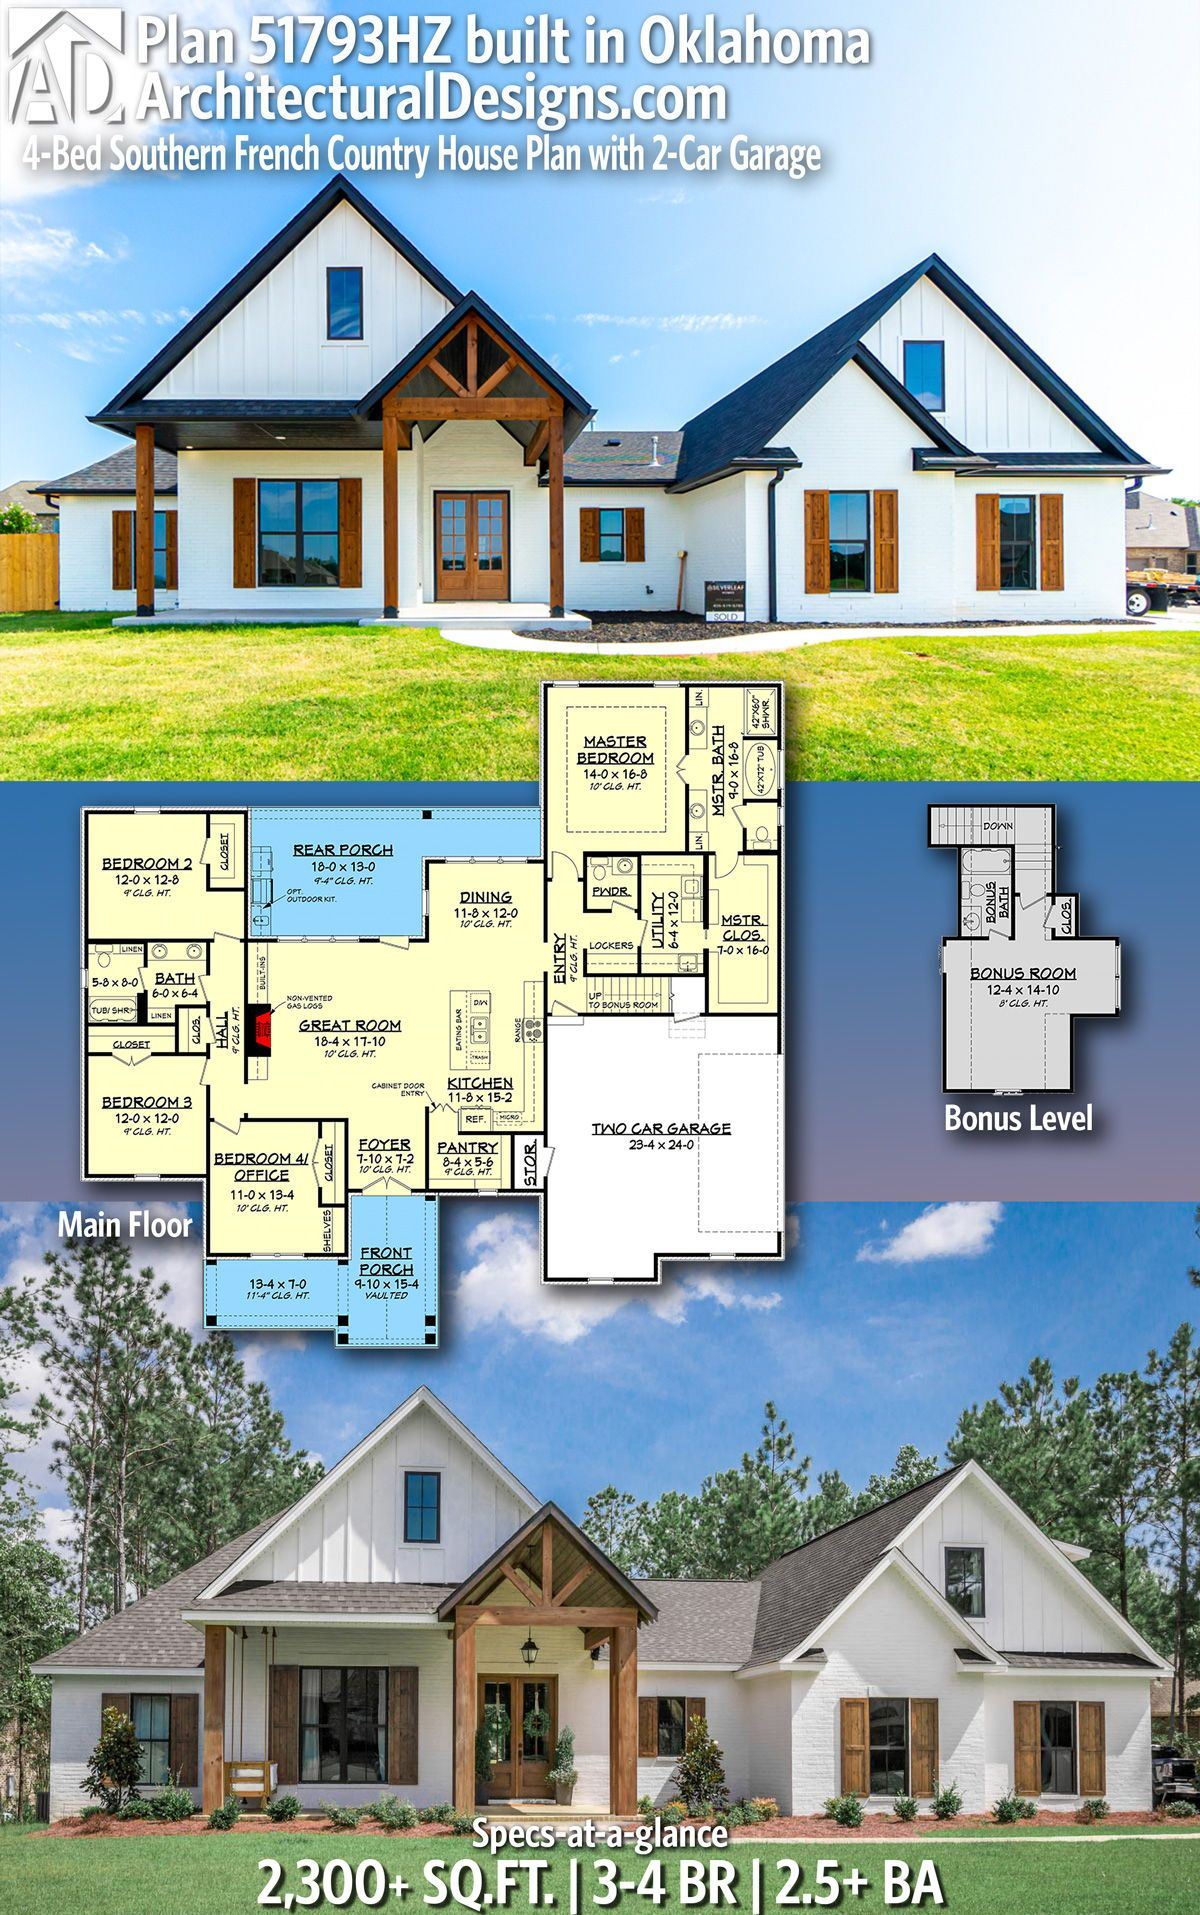 Plan 51793hz 4 Bed Southern French Country House Plan With 2 Car Garage French Country House Plans Country House Plan French Country House